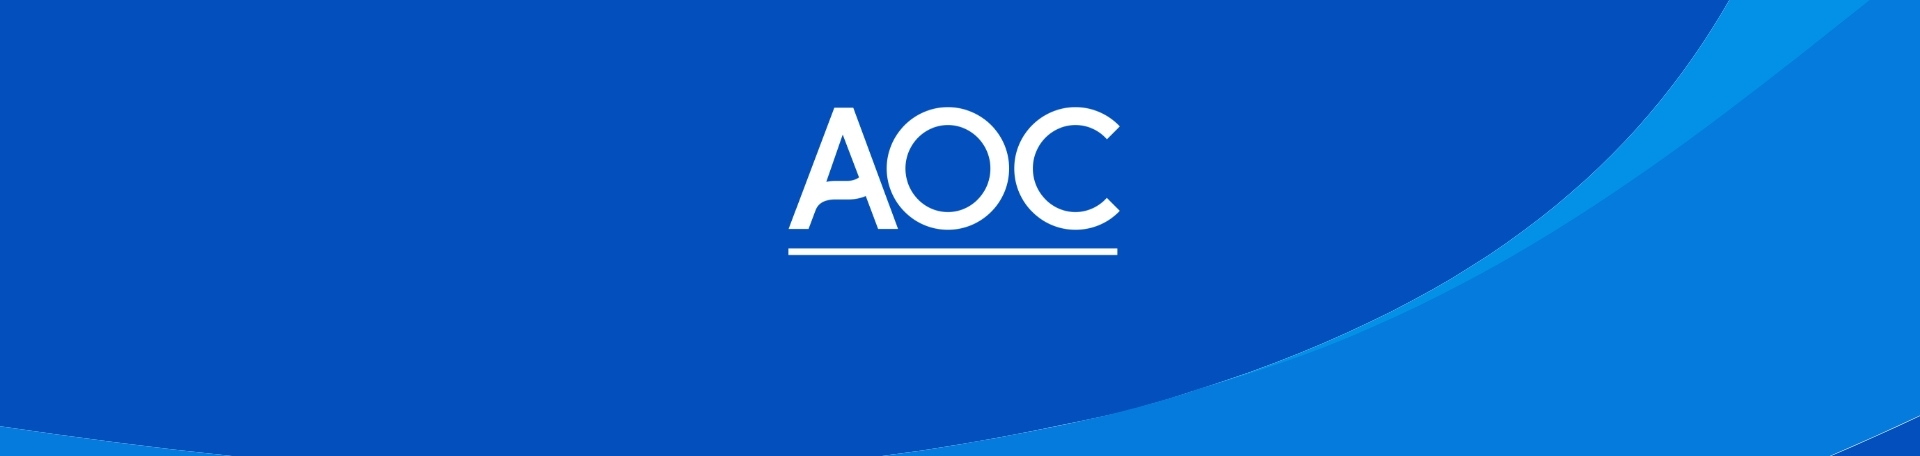 AOC Announces Price Increase for EMEA